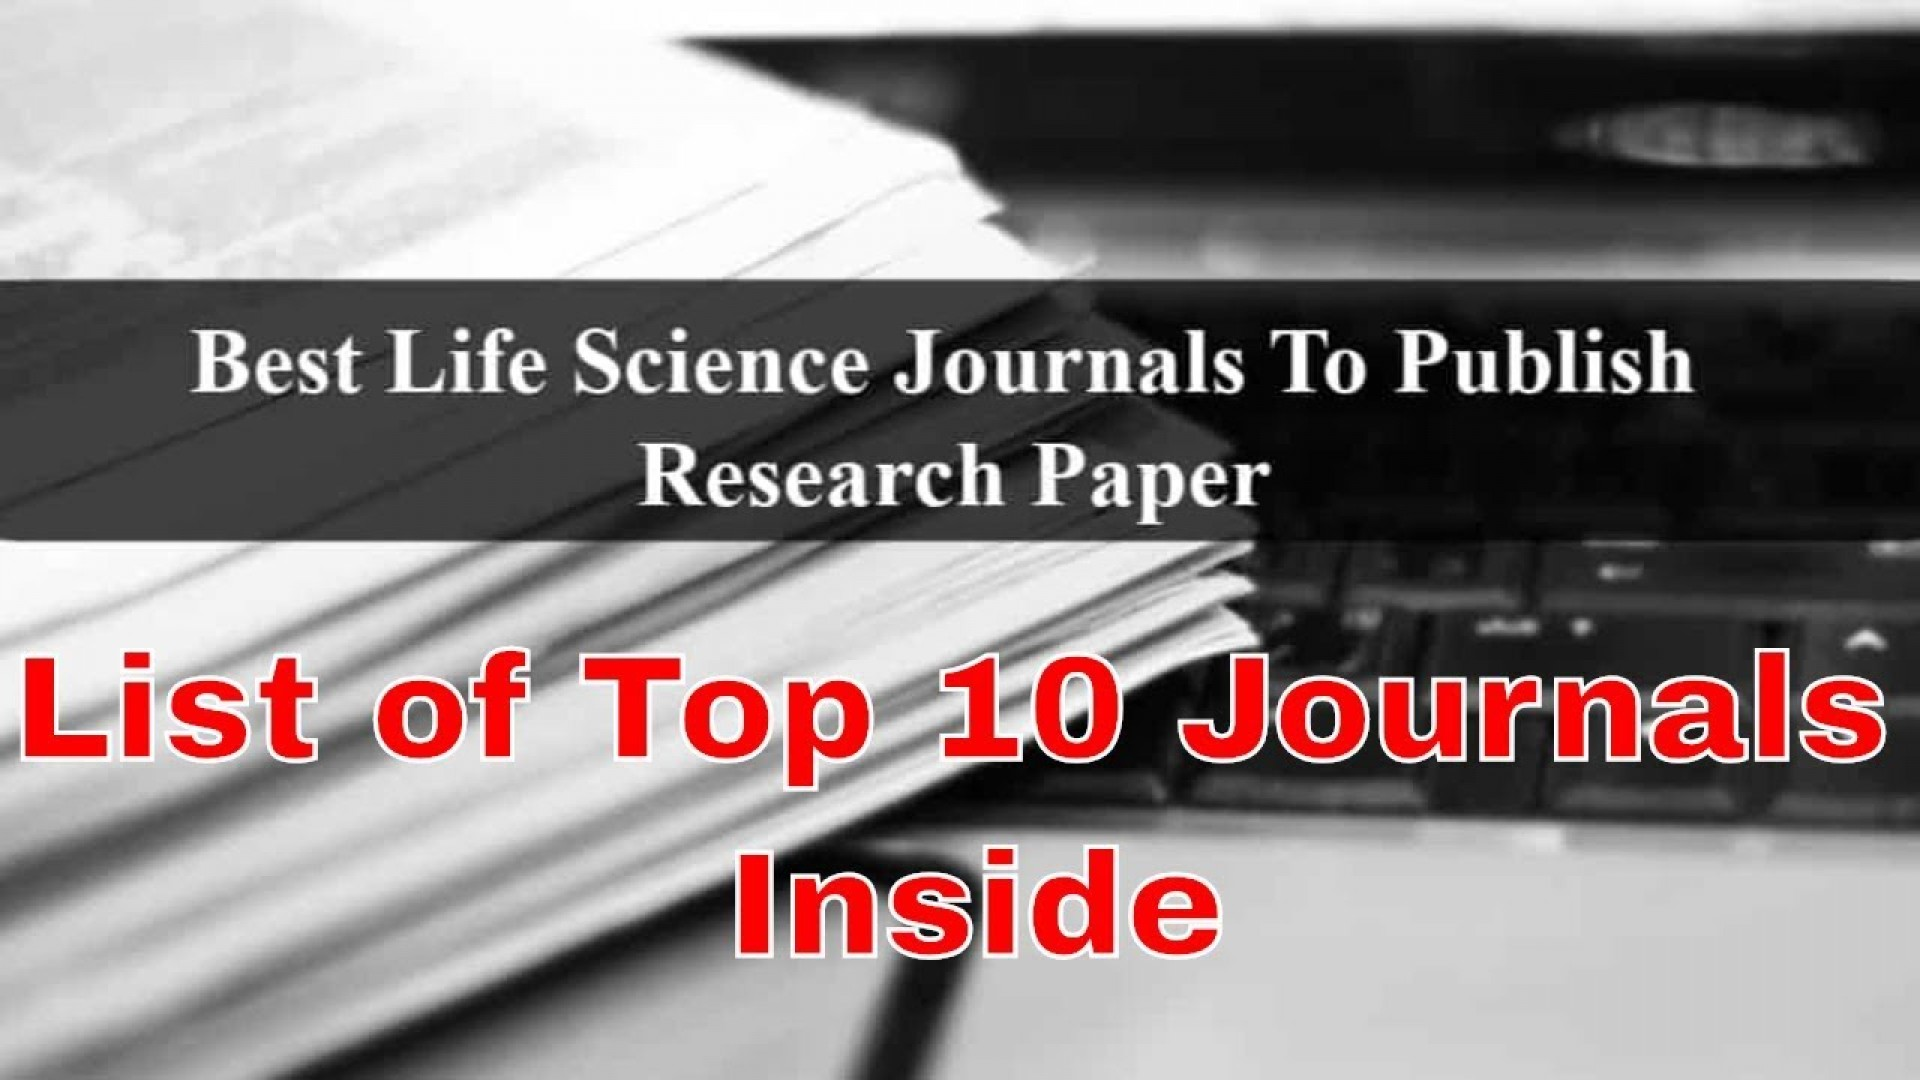 004 Maxresdefault Best Journals To Publish Researchs Stunning Research Papers In Computer Science List Of 1920